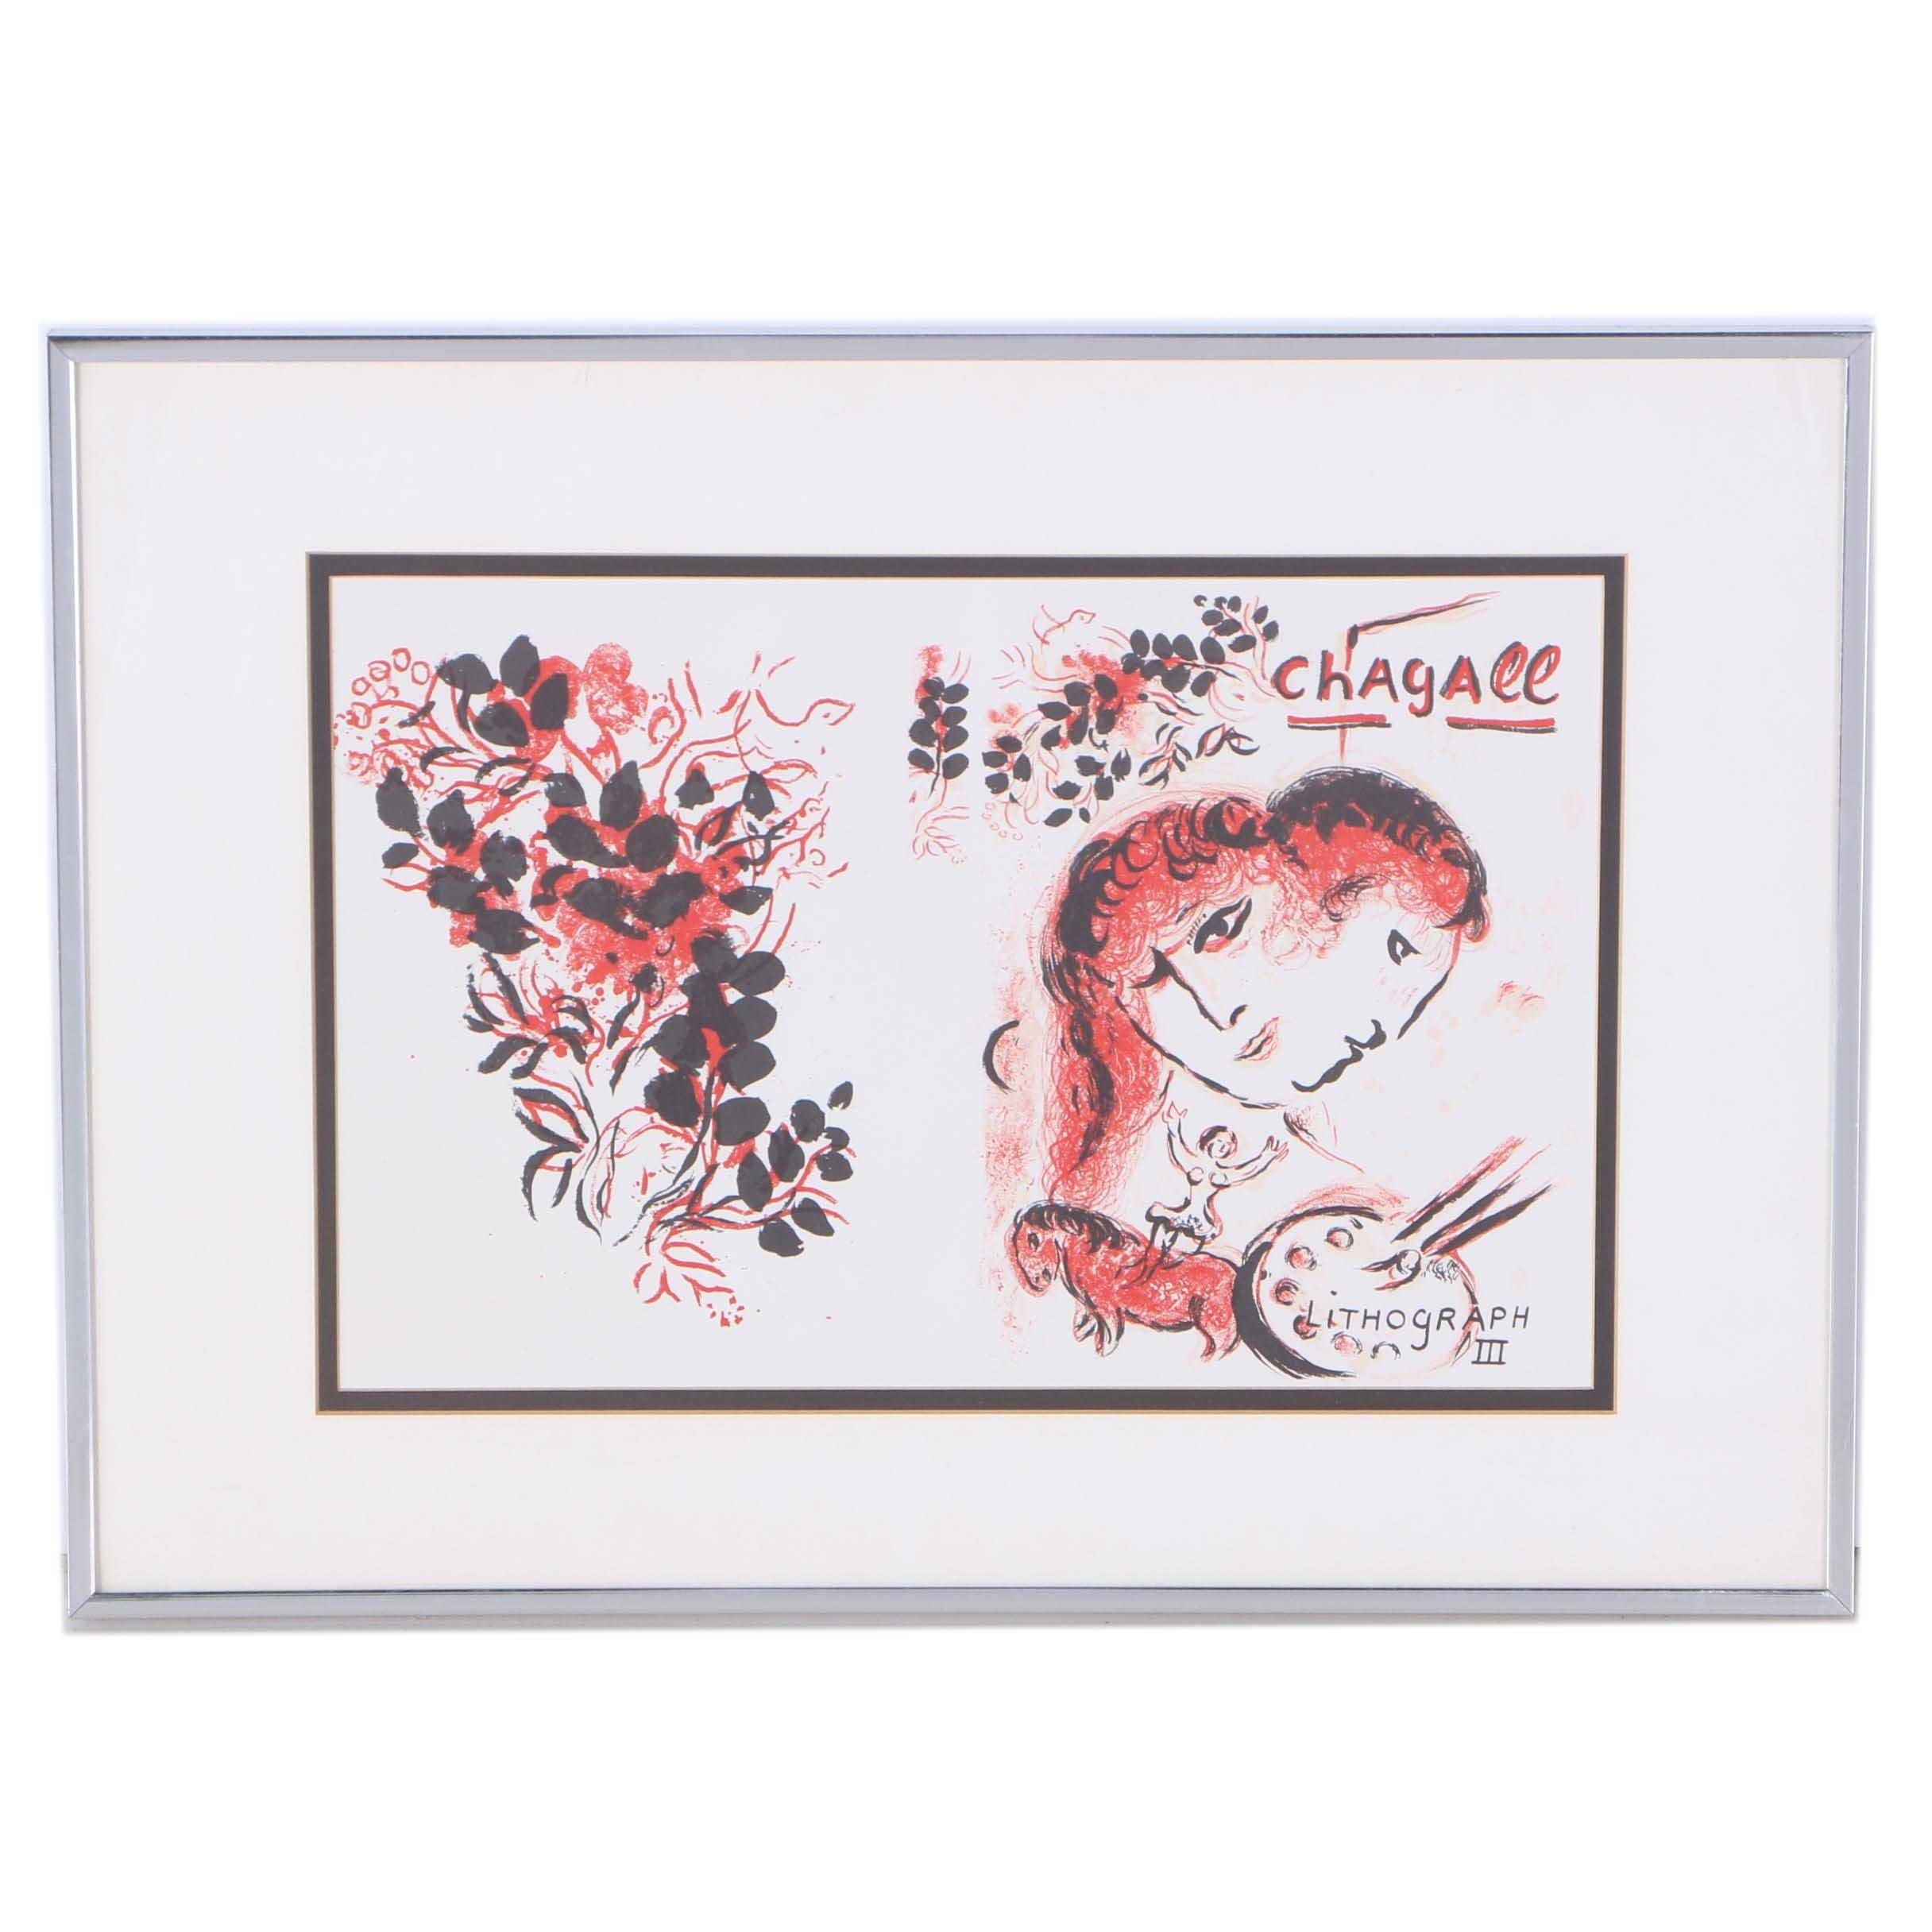 "Marc Chagall Lithograph on Paper ""Lithograph III"""